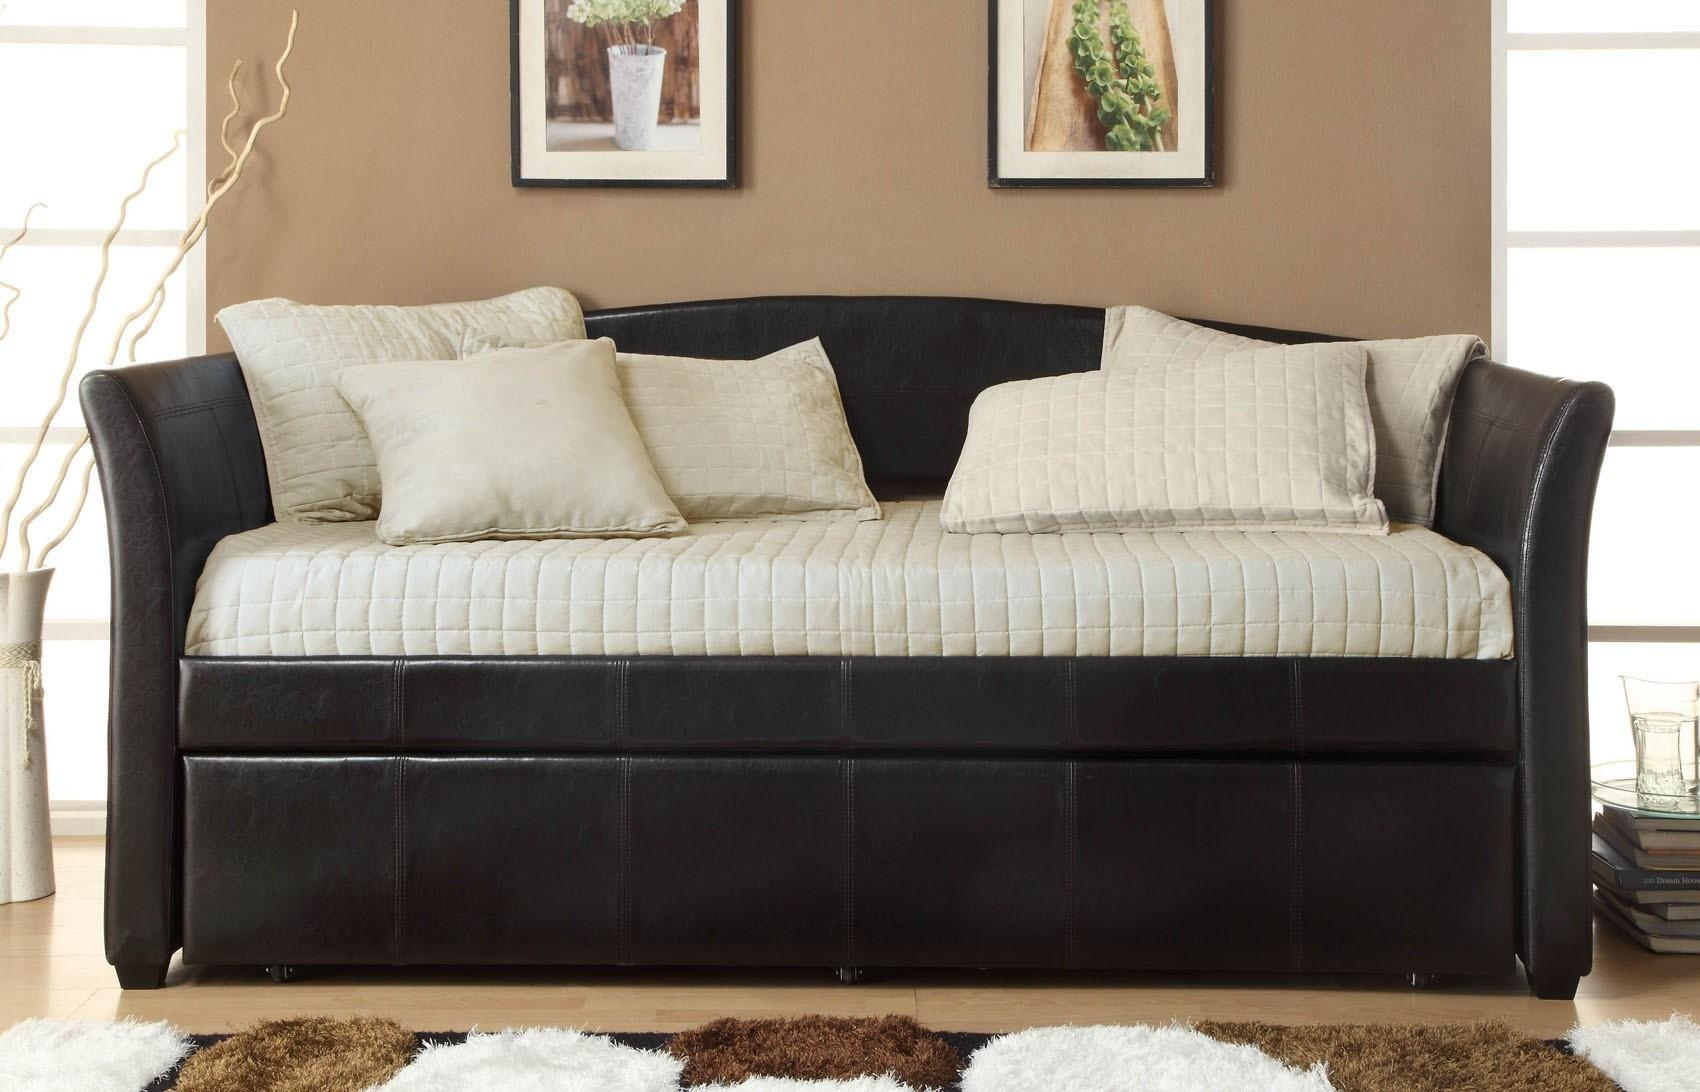 Bedroom Furniture : Leather Sleeper Sofa Sofa Convertibles With Sofa Convertibles (Image 6 of 20)